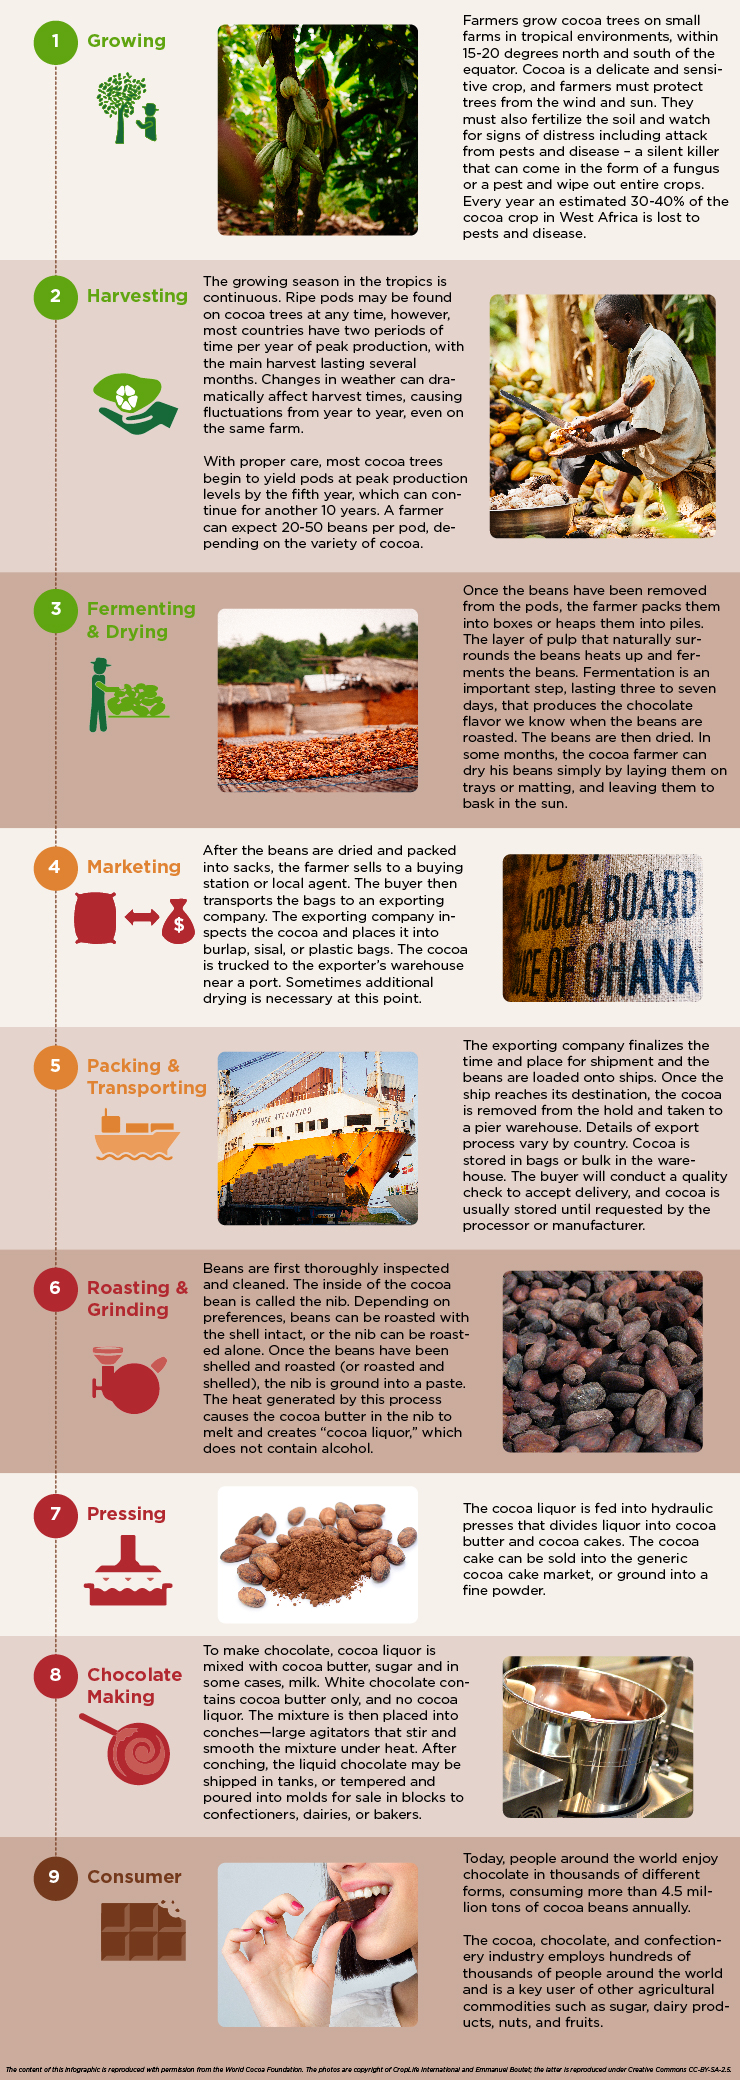 Cocoa Value Chain